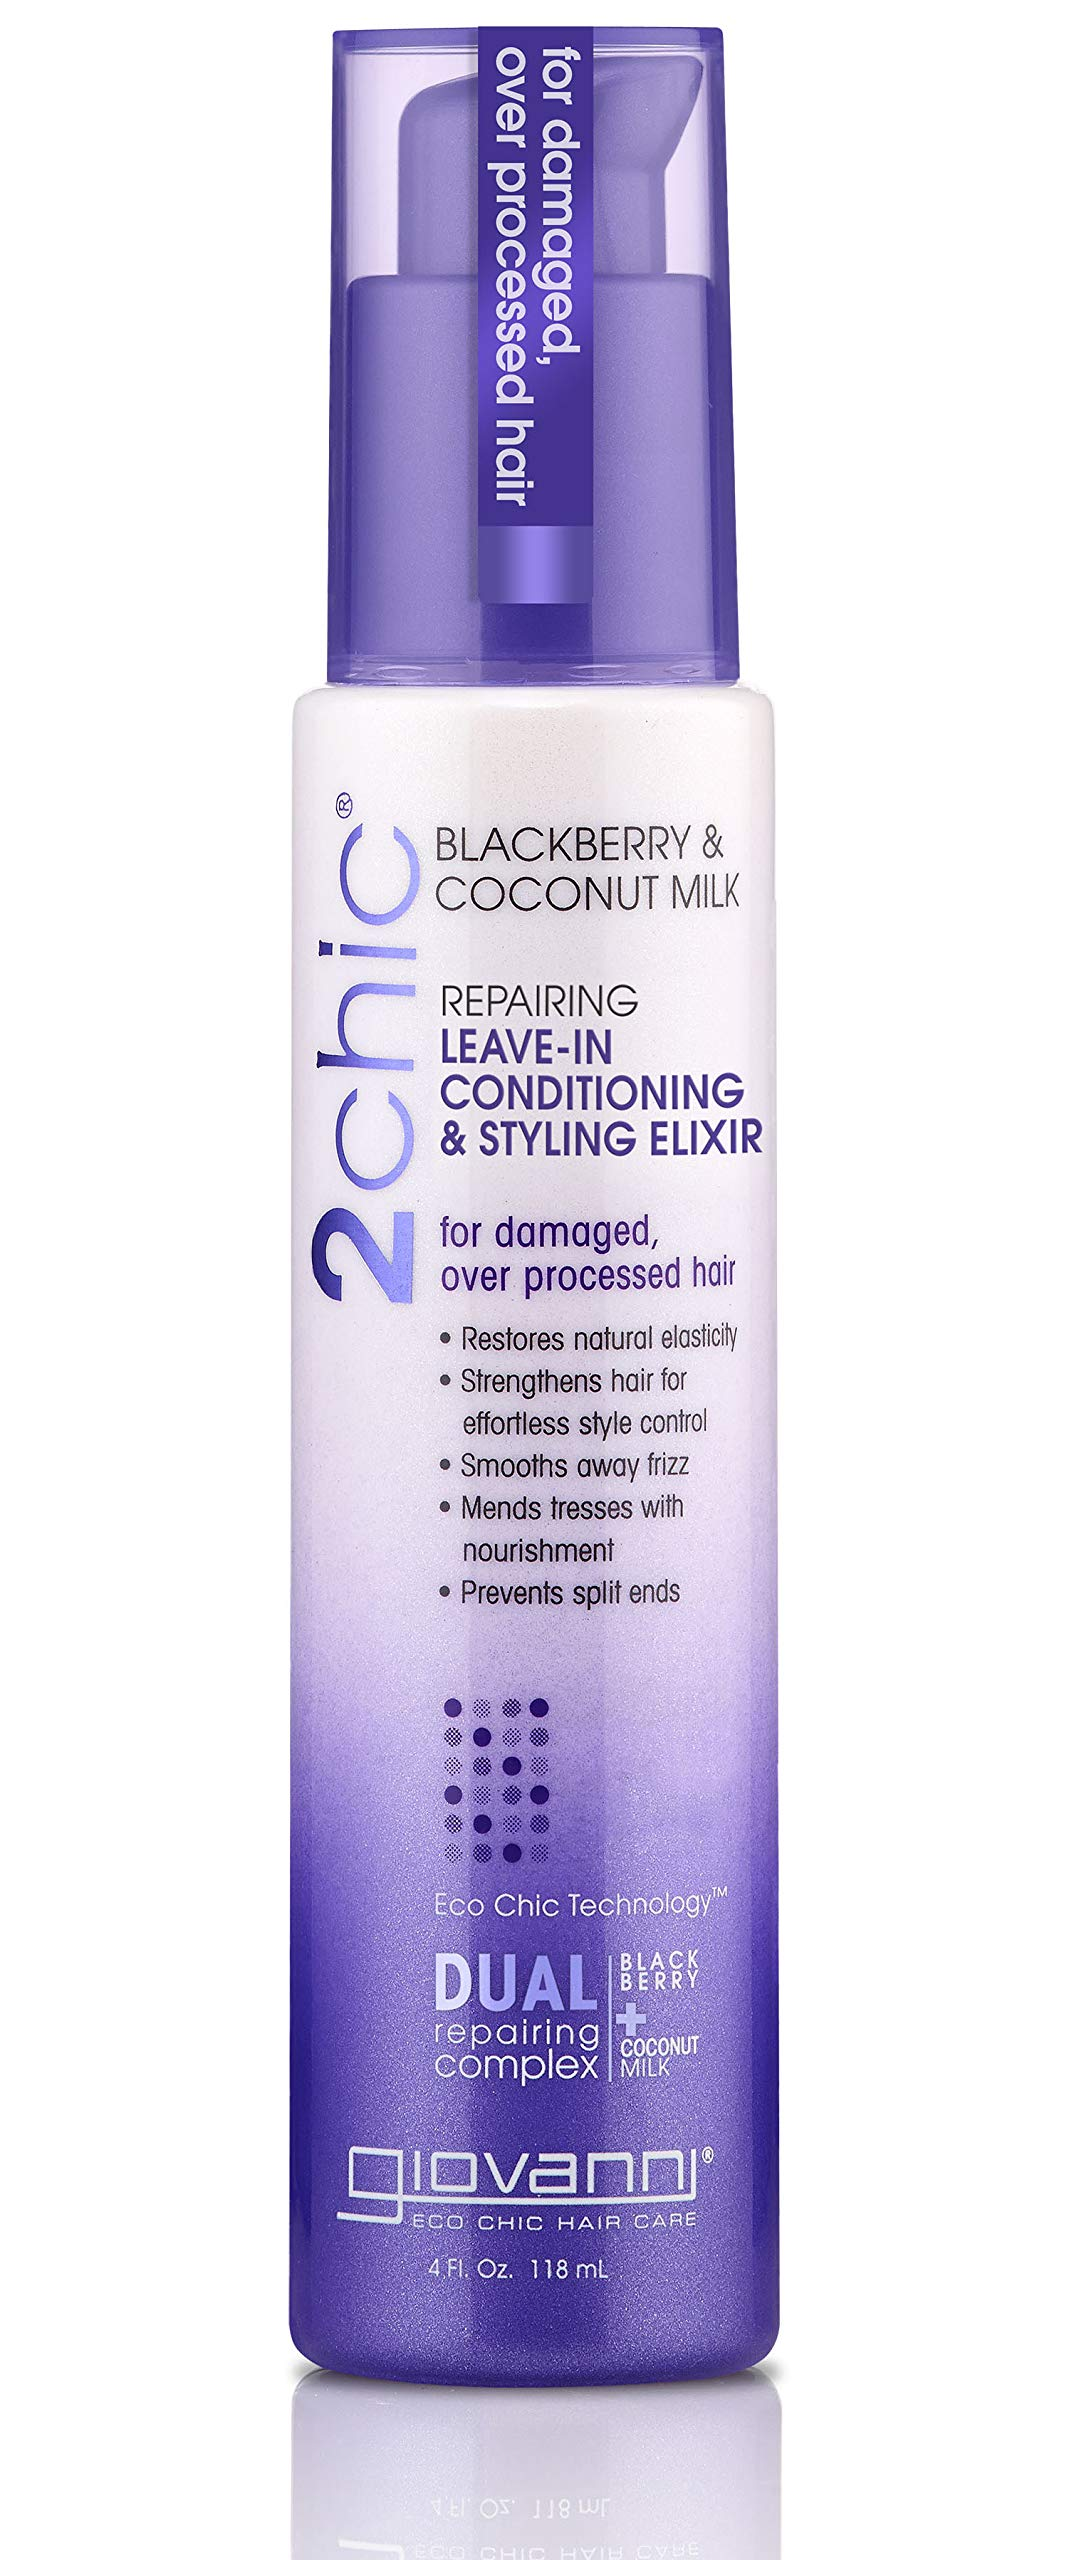 GIOVANNI 2Chic Blackberry & Coconut Repairing Leave-In Conditioner and Styling Elixir - Nourishing and